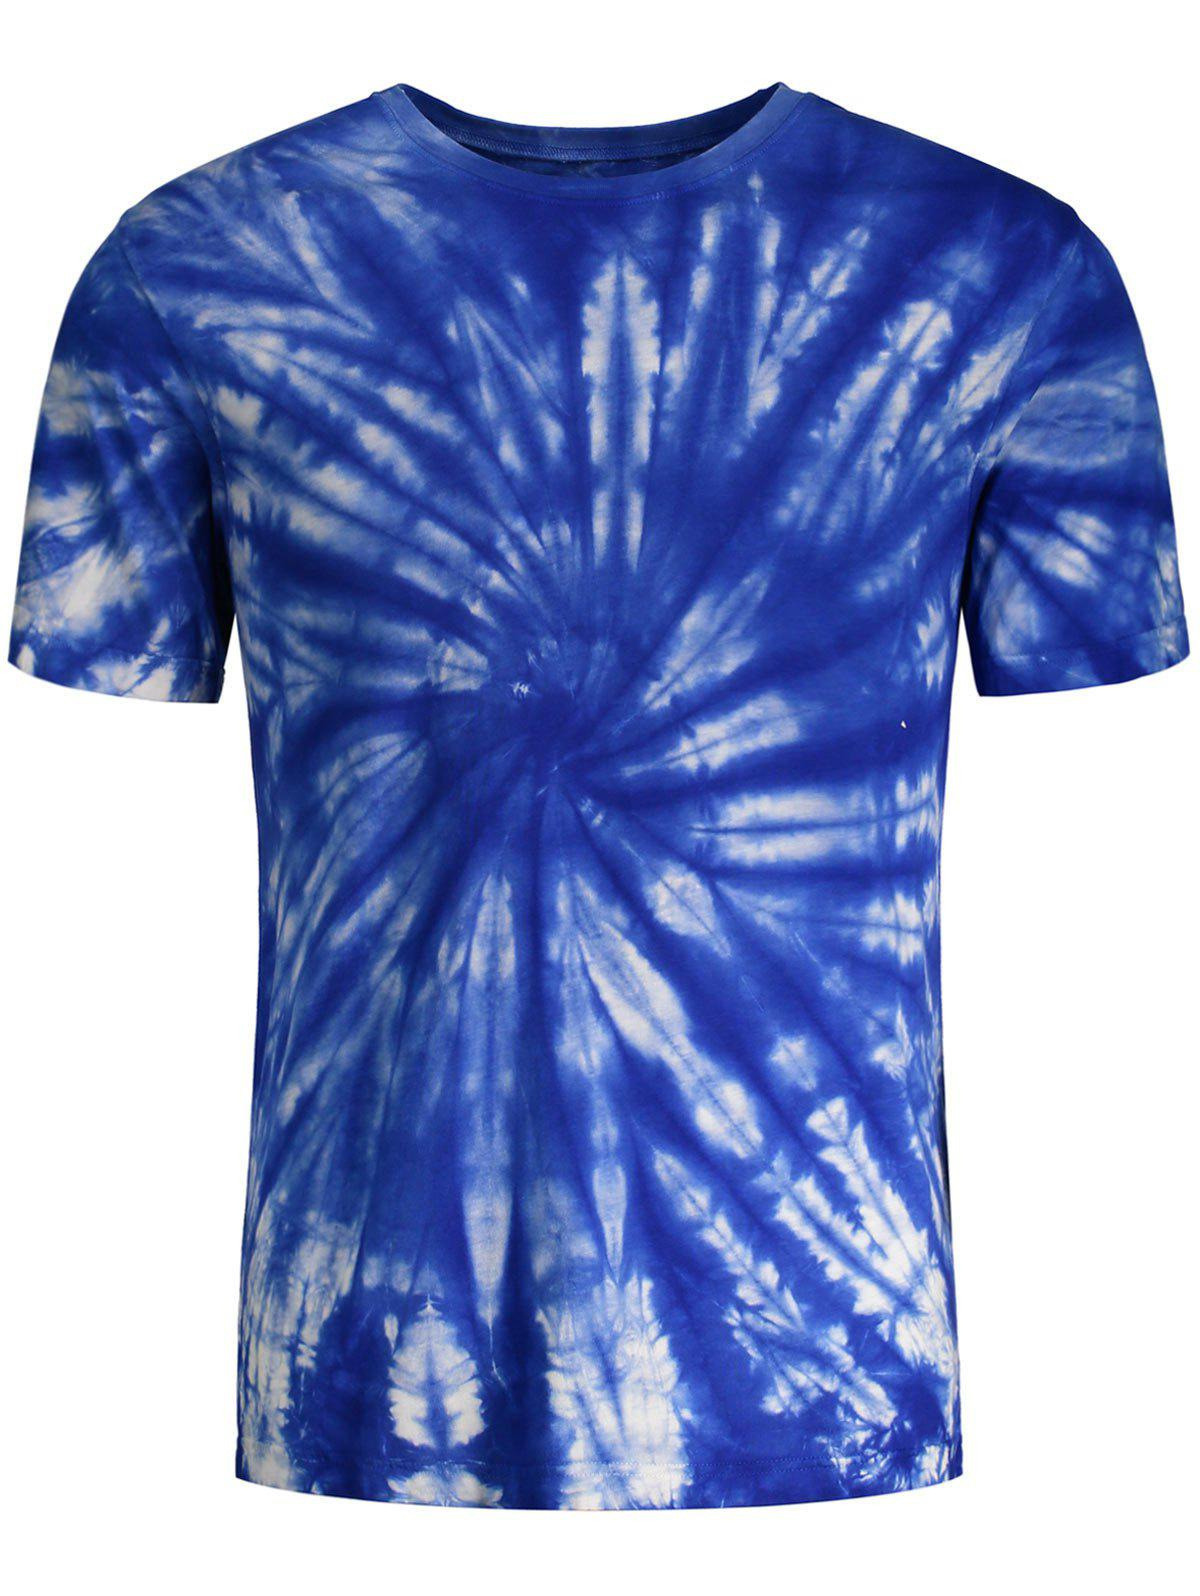 Tie dye printed short sleeves t shirt blue m in t shirts for Tie dye t shirt printing